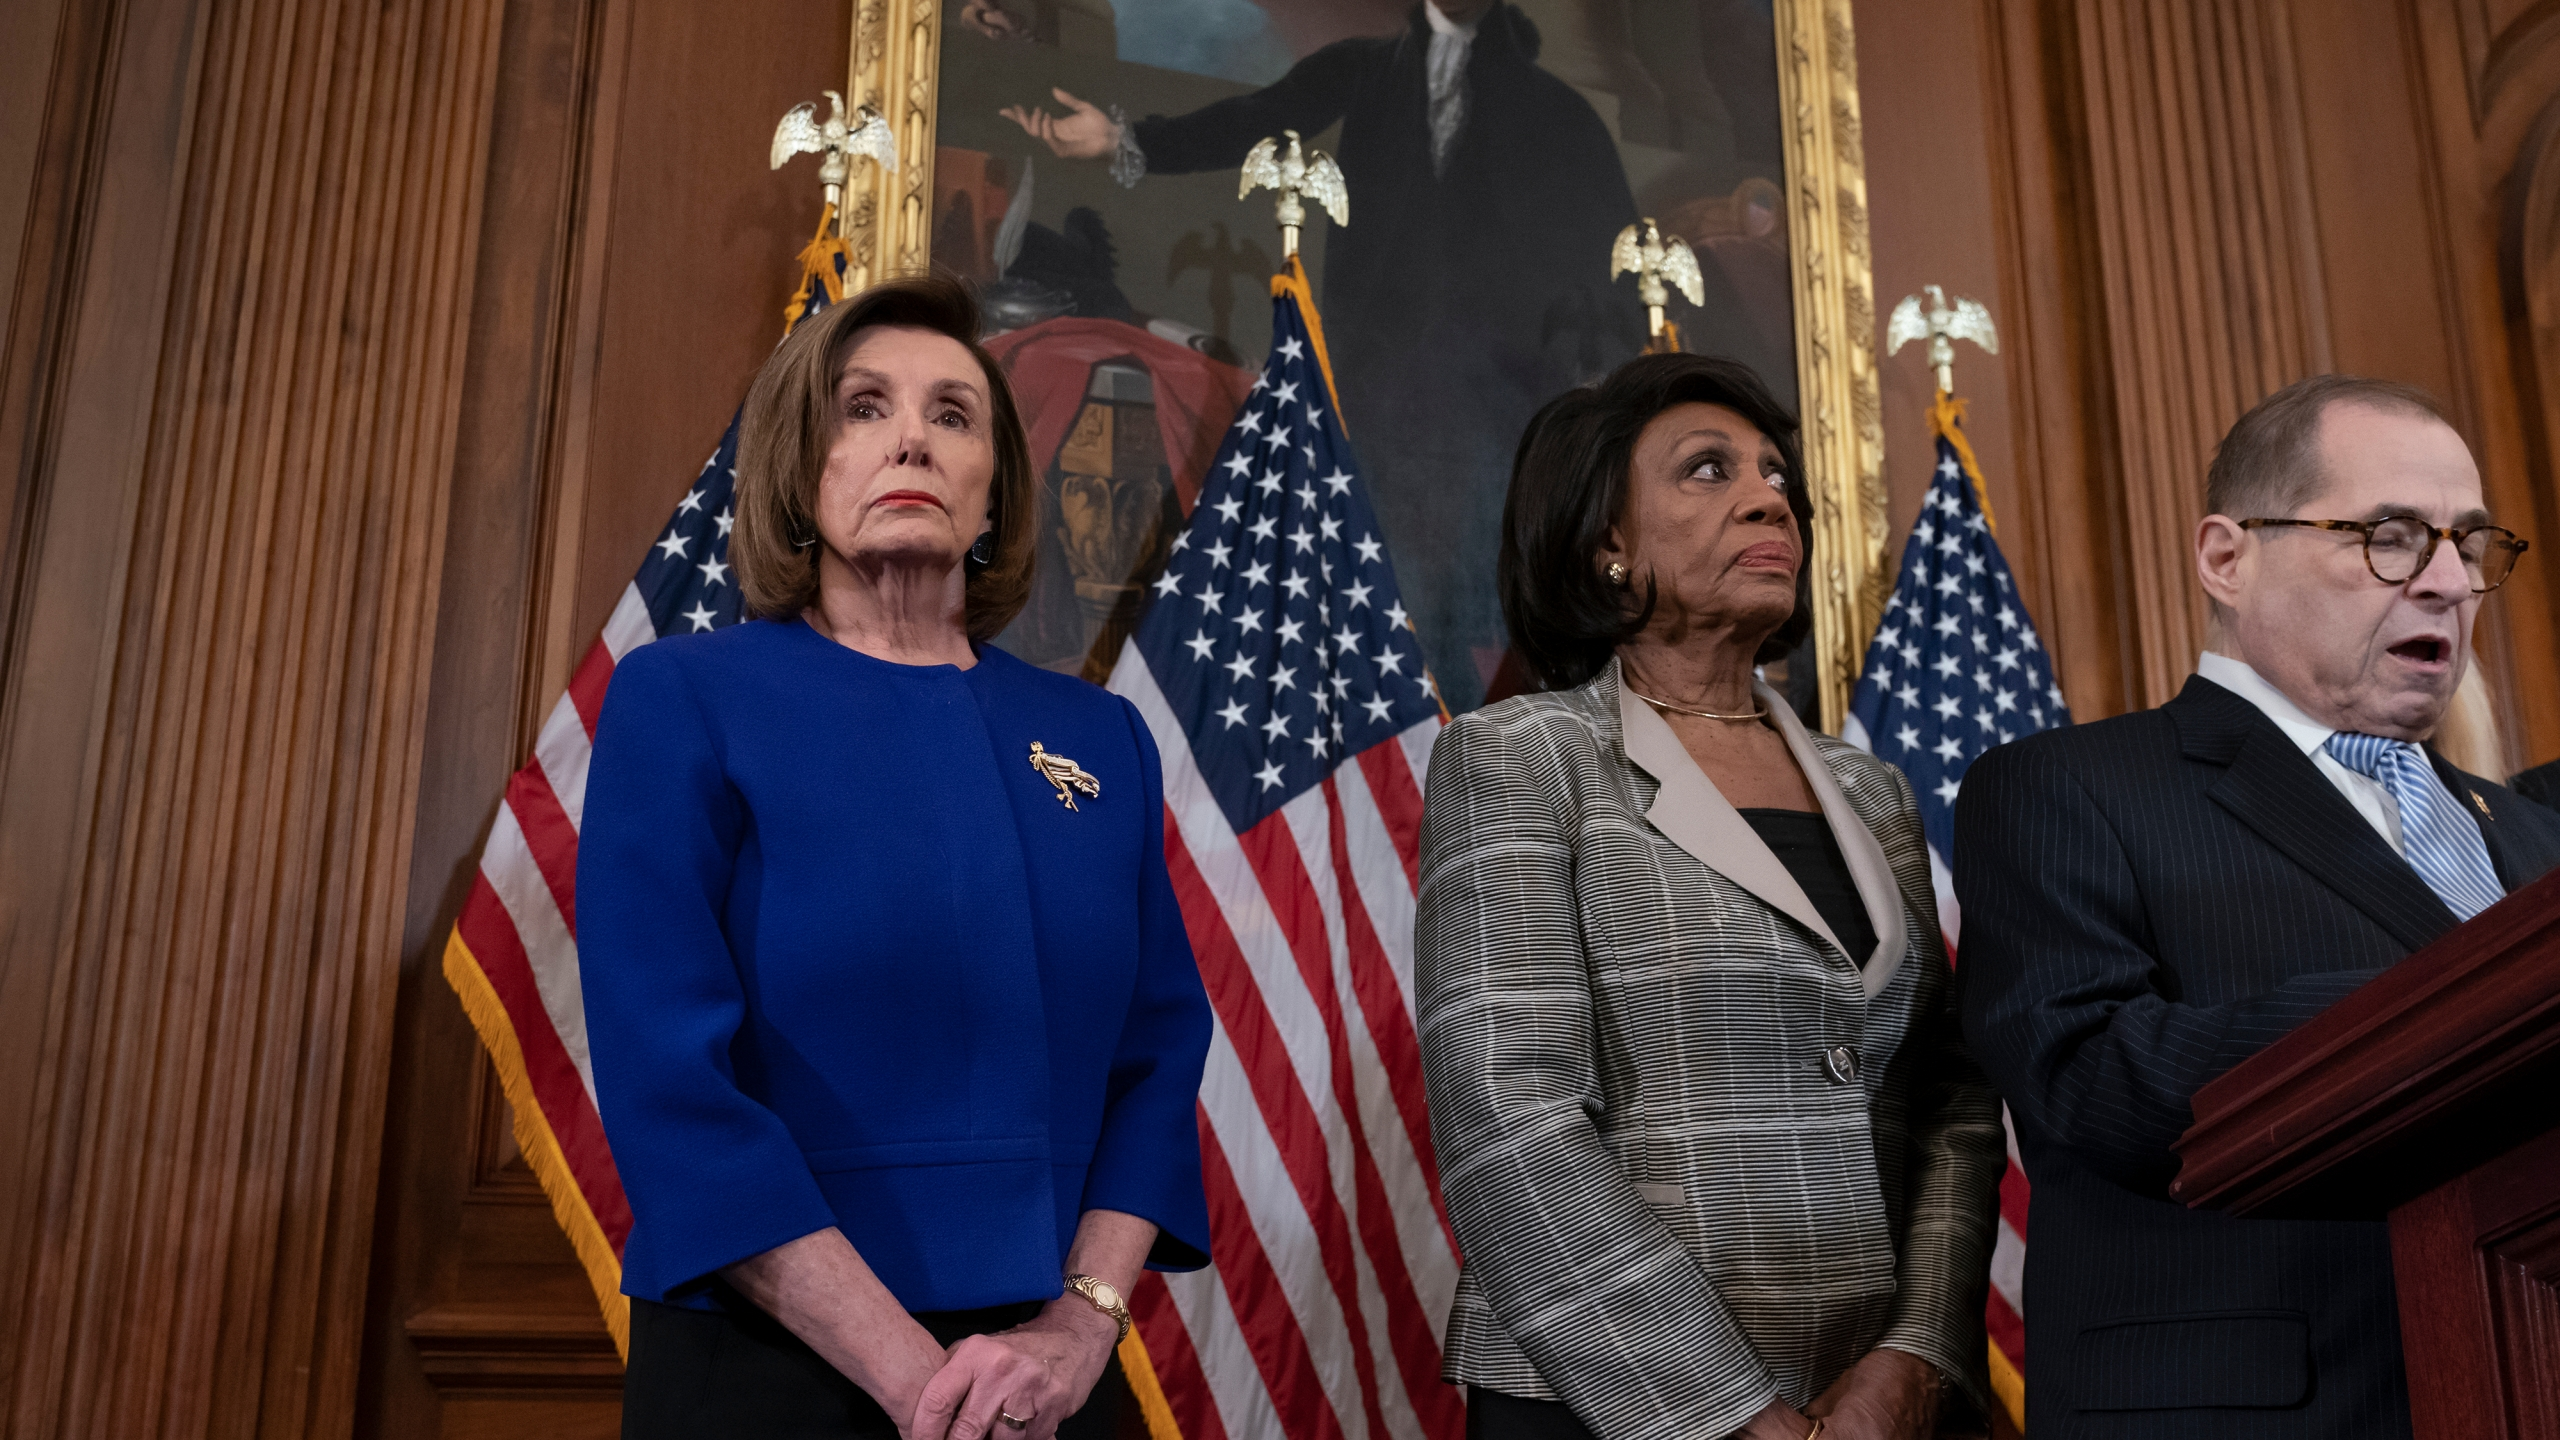 Nancy Pelosi, Jerrold Nadler, Maxine Waters